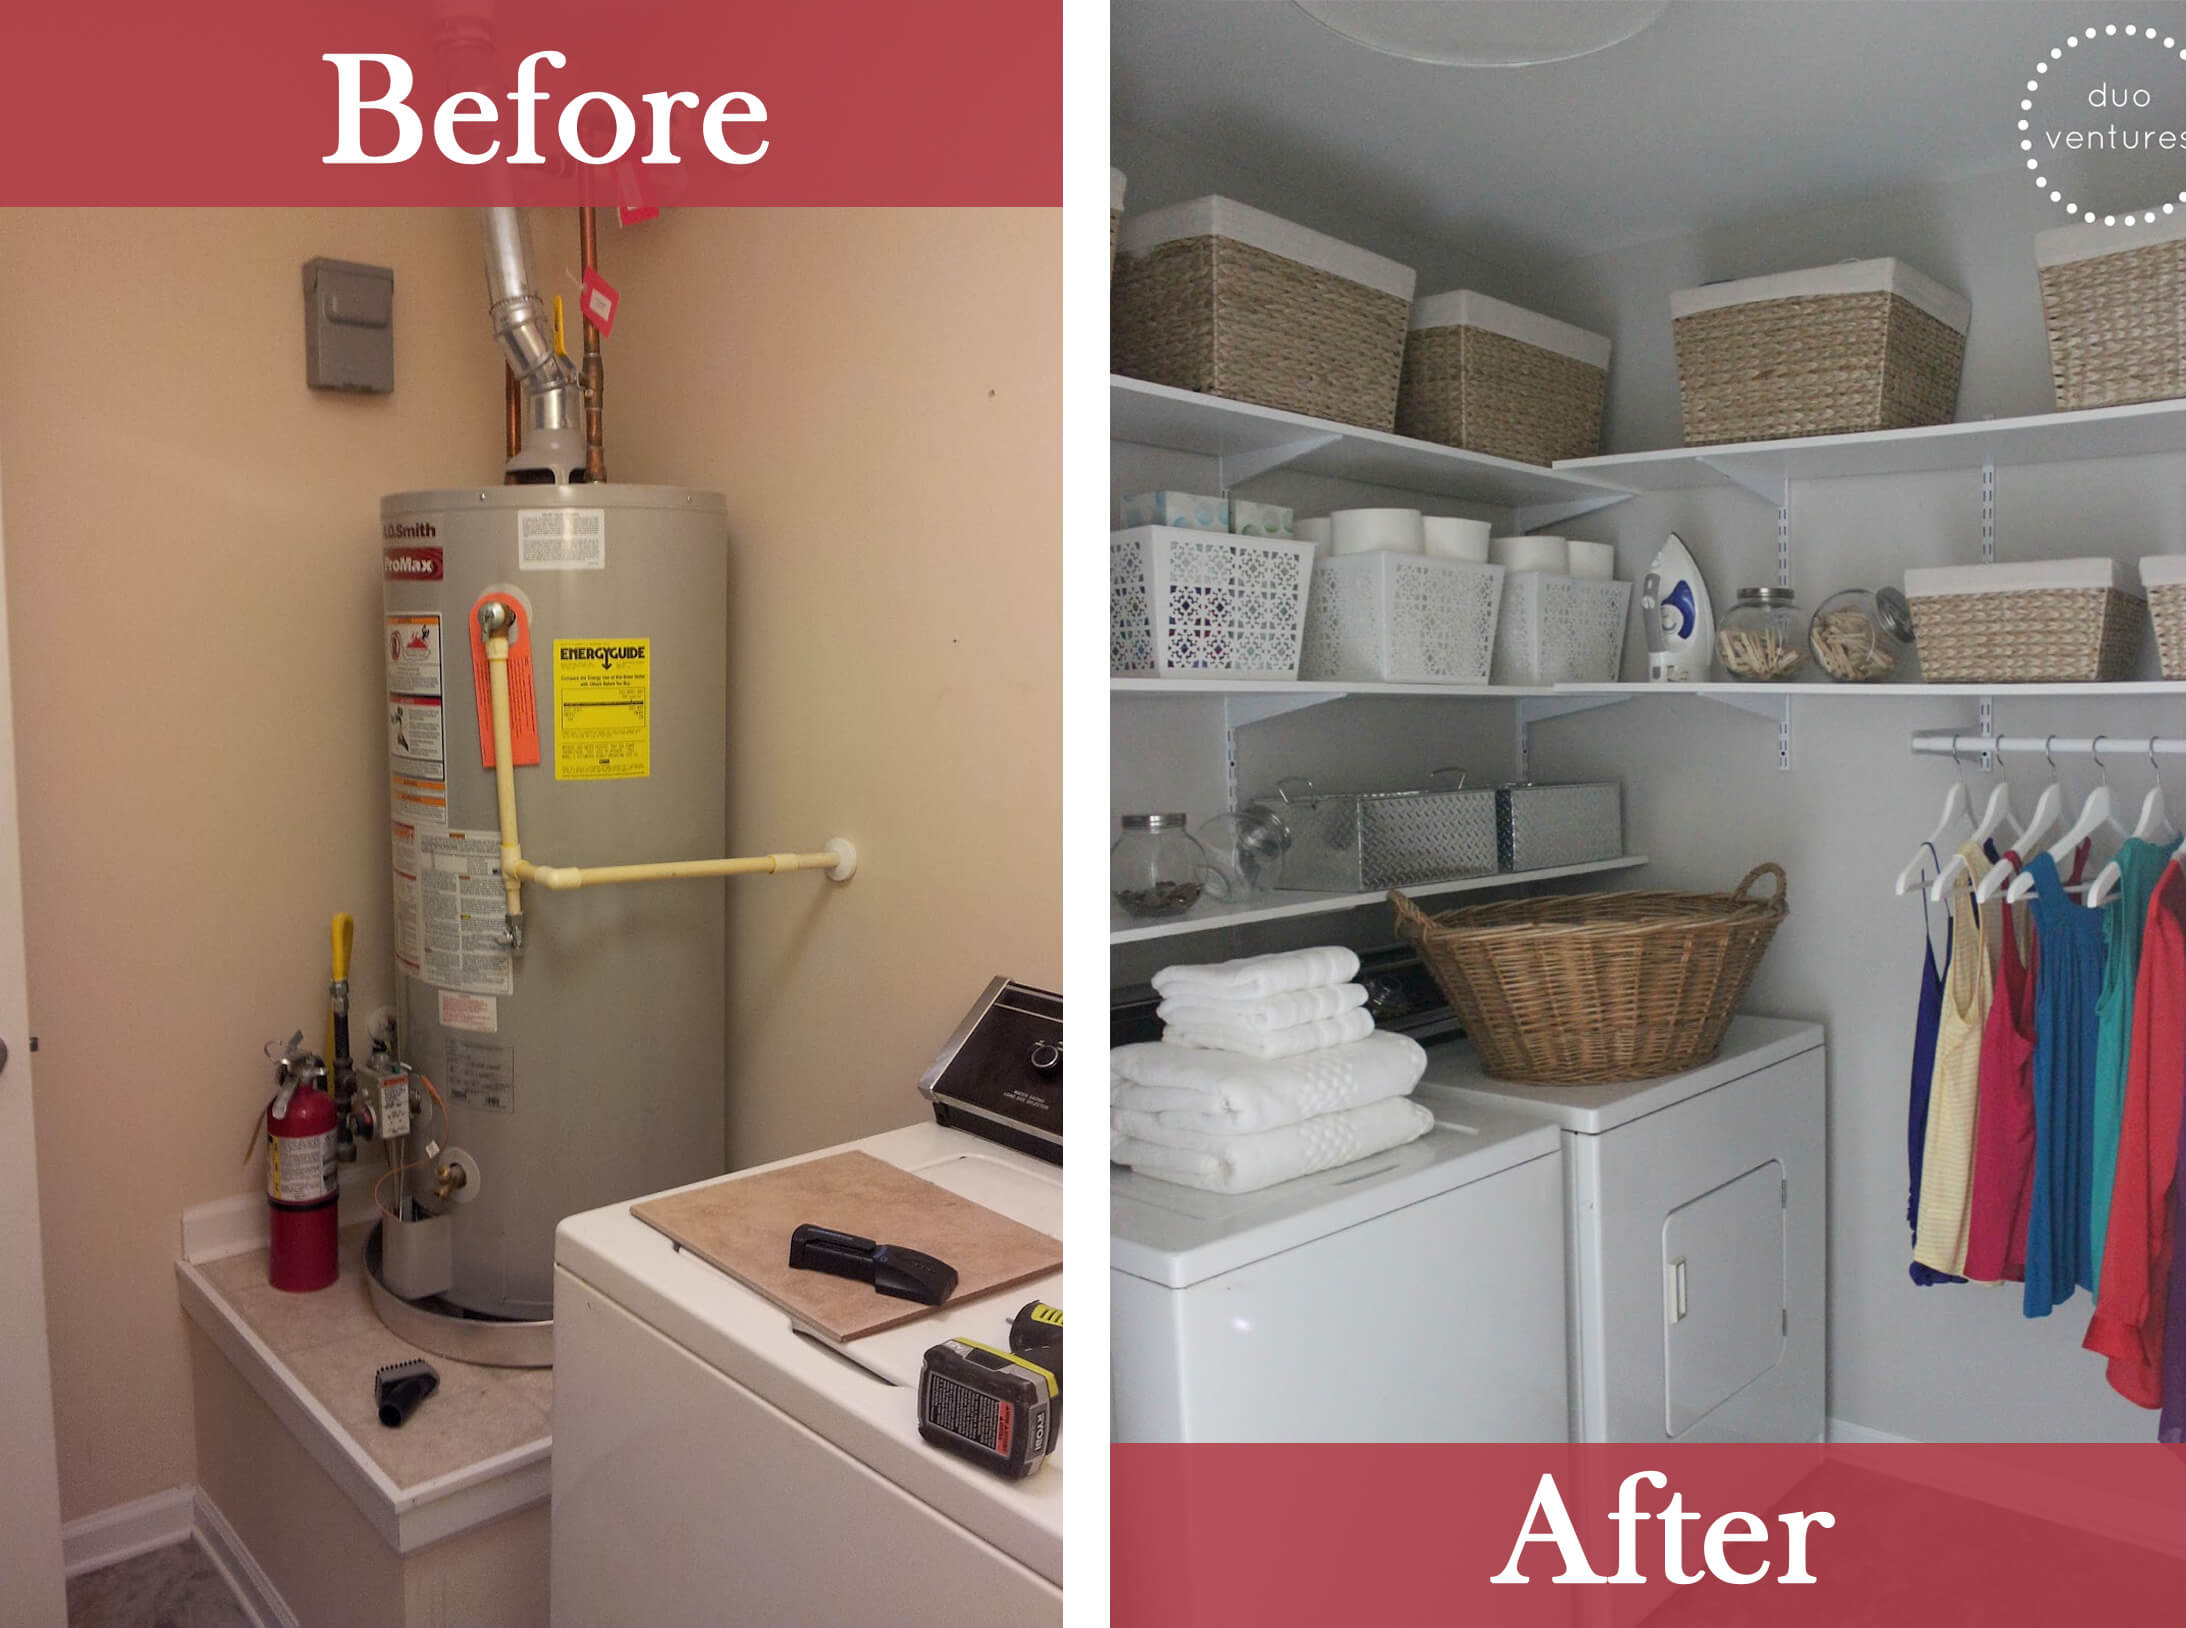 Laundry Closet with Extra Shelves and Hanging Space